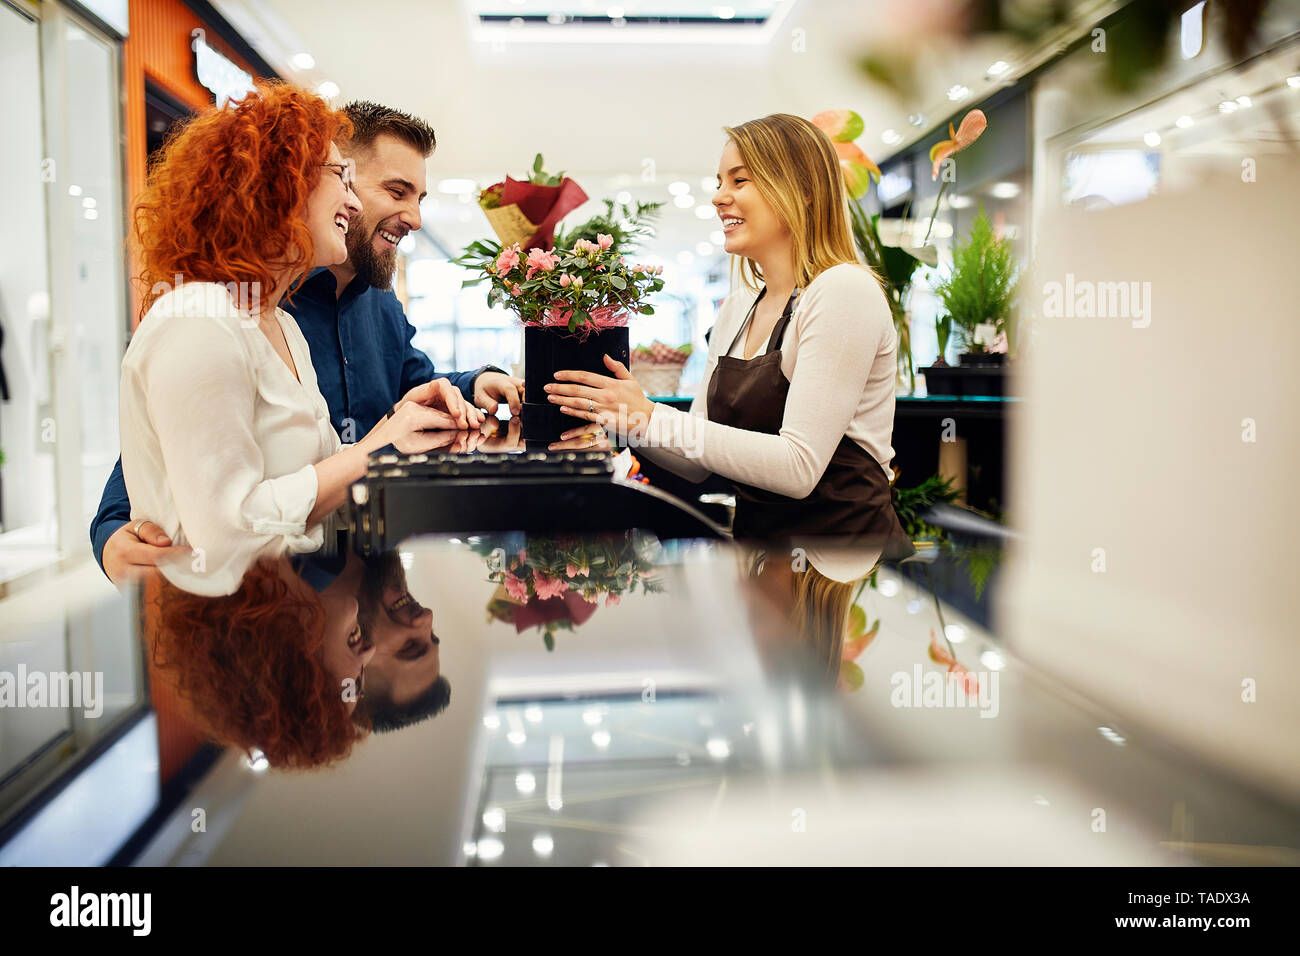 Happy couple and shop assistant with potted plant at counter in flower shop - Stock Image